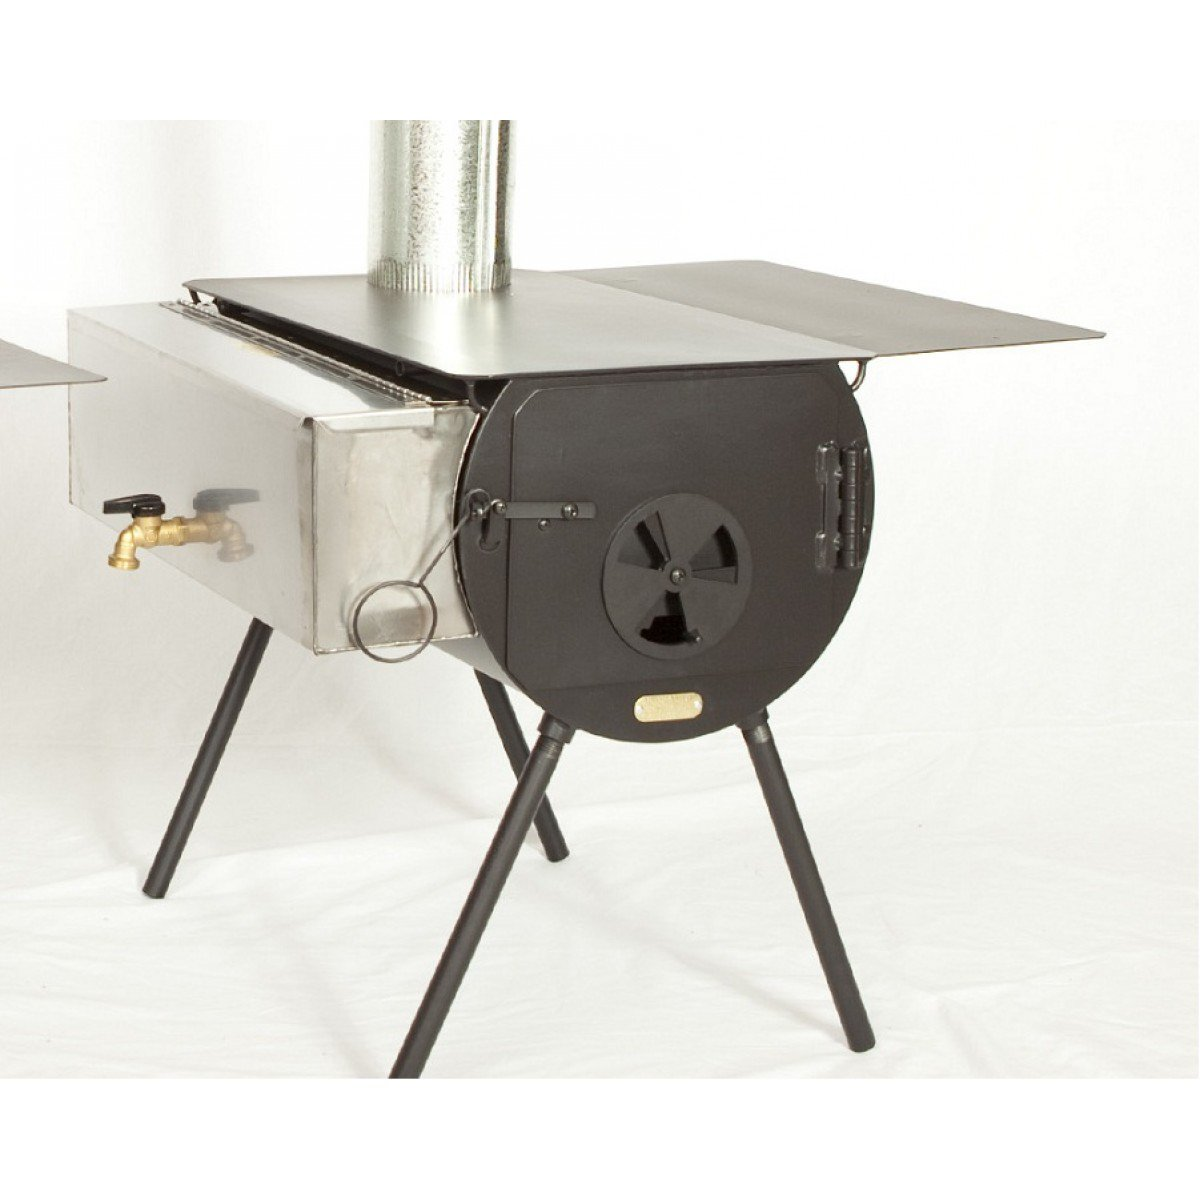 Hunter Stove Package w/Grate Tent Wood Cylinder Stove